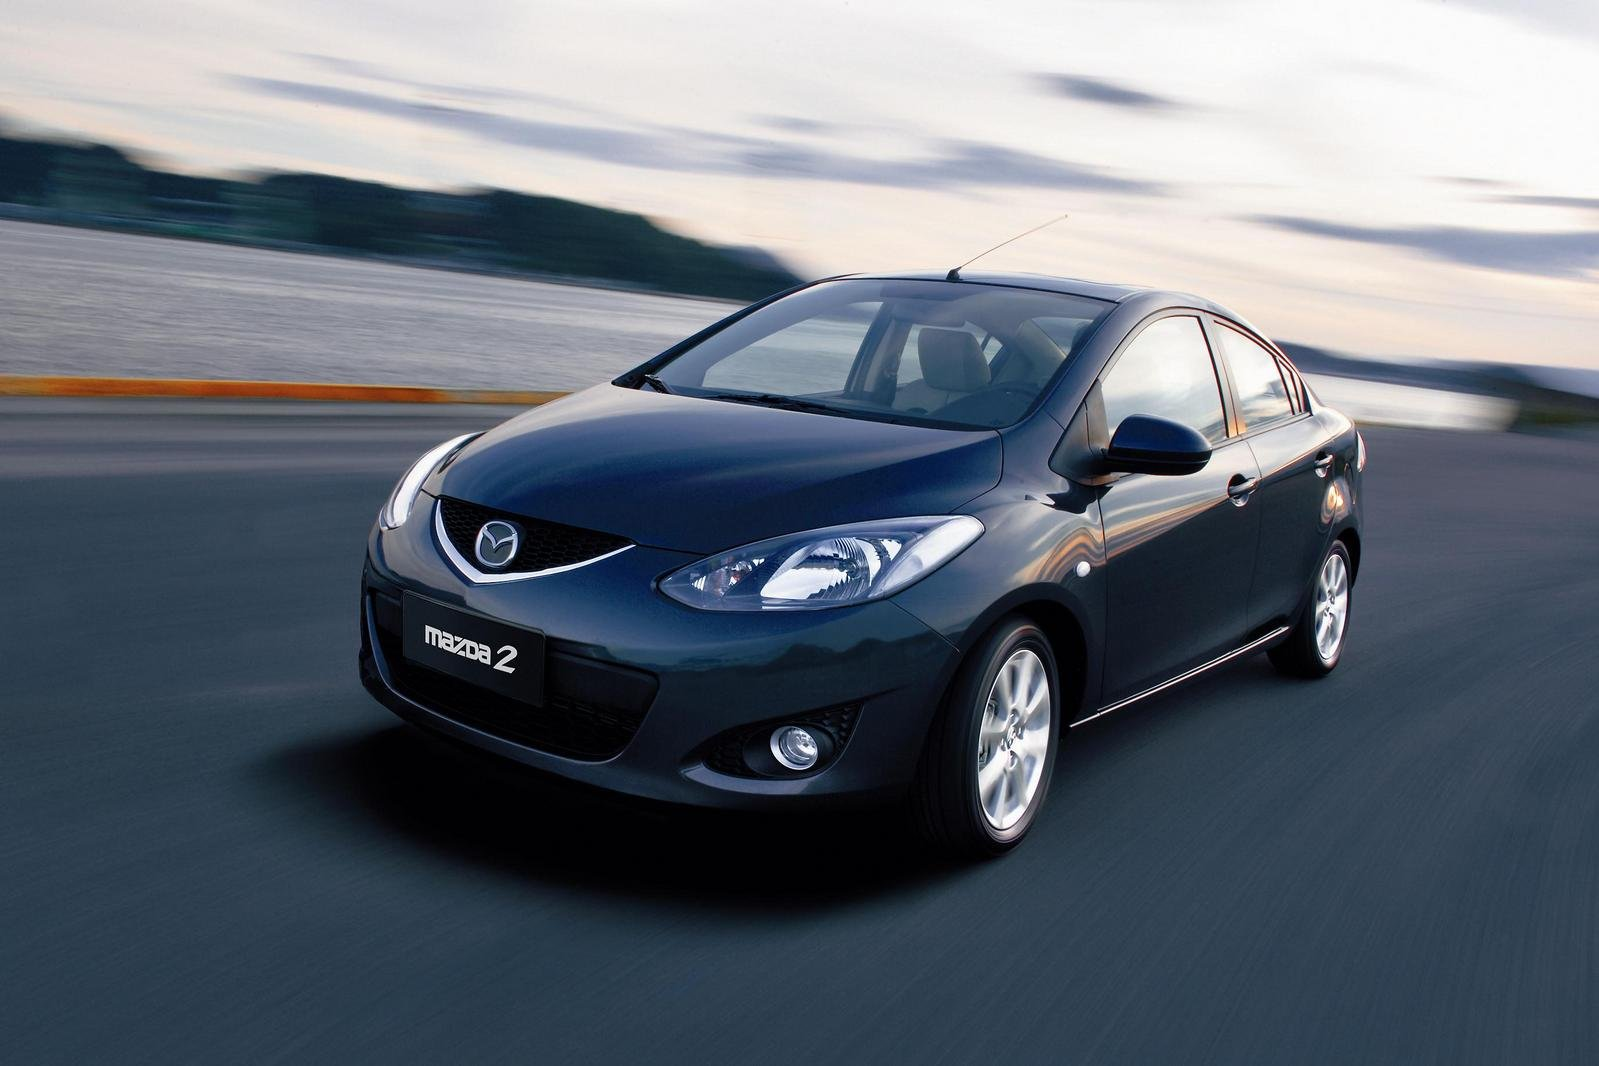 2008 mazda2 sedan review top speed. Black Bedroom Furniture Sets. Home Design Ideas